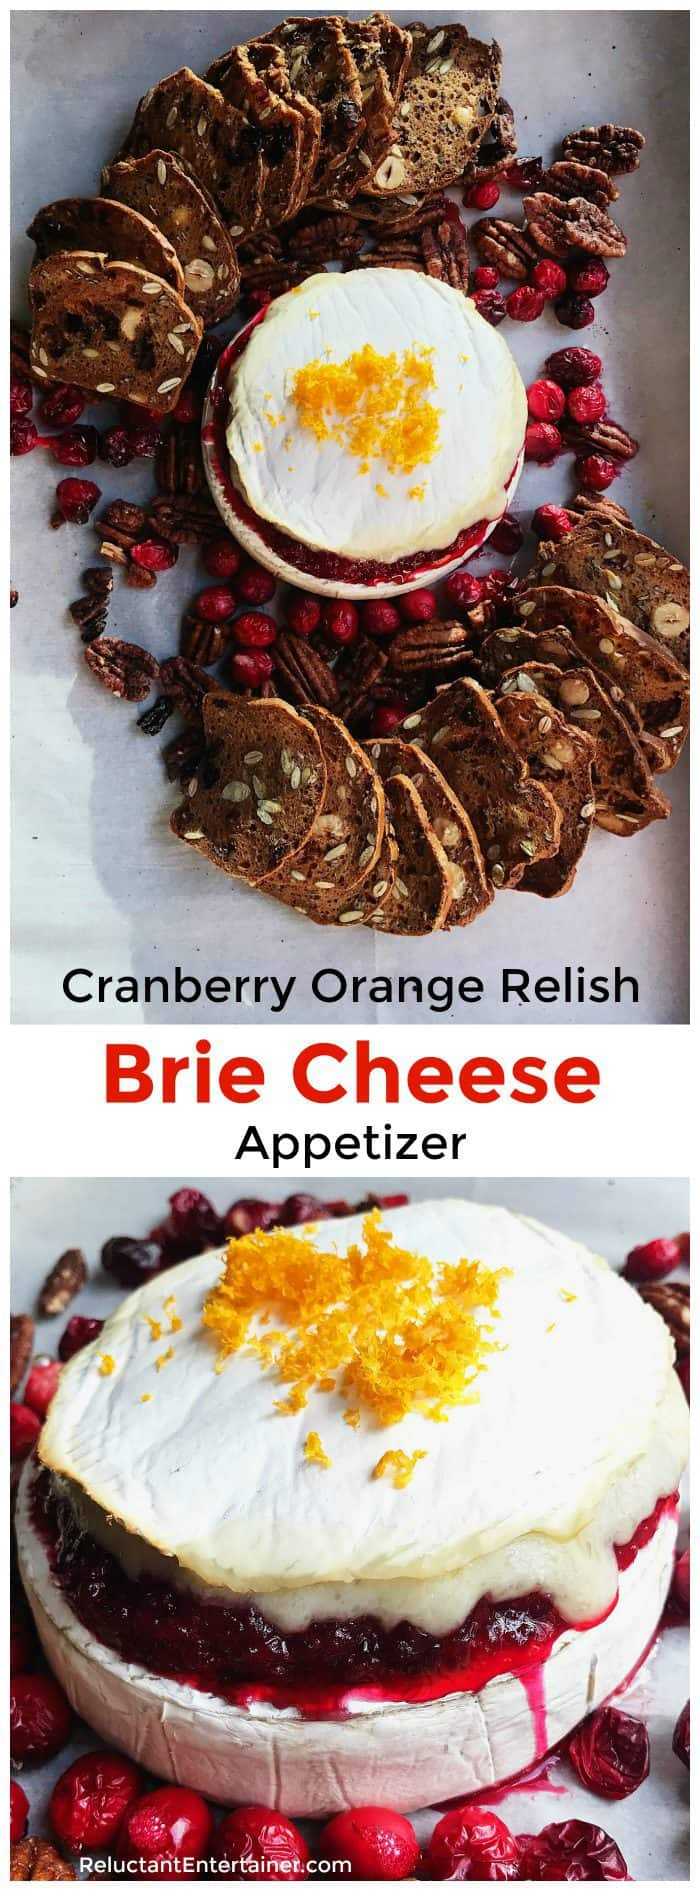 Cranberry Orange Relish Brie Cheese Appetizer in partnership with Pine Mountain